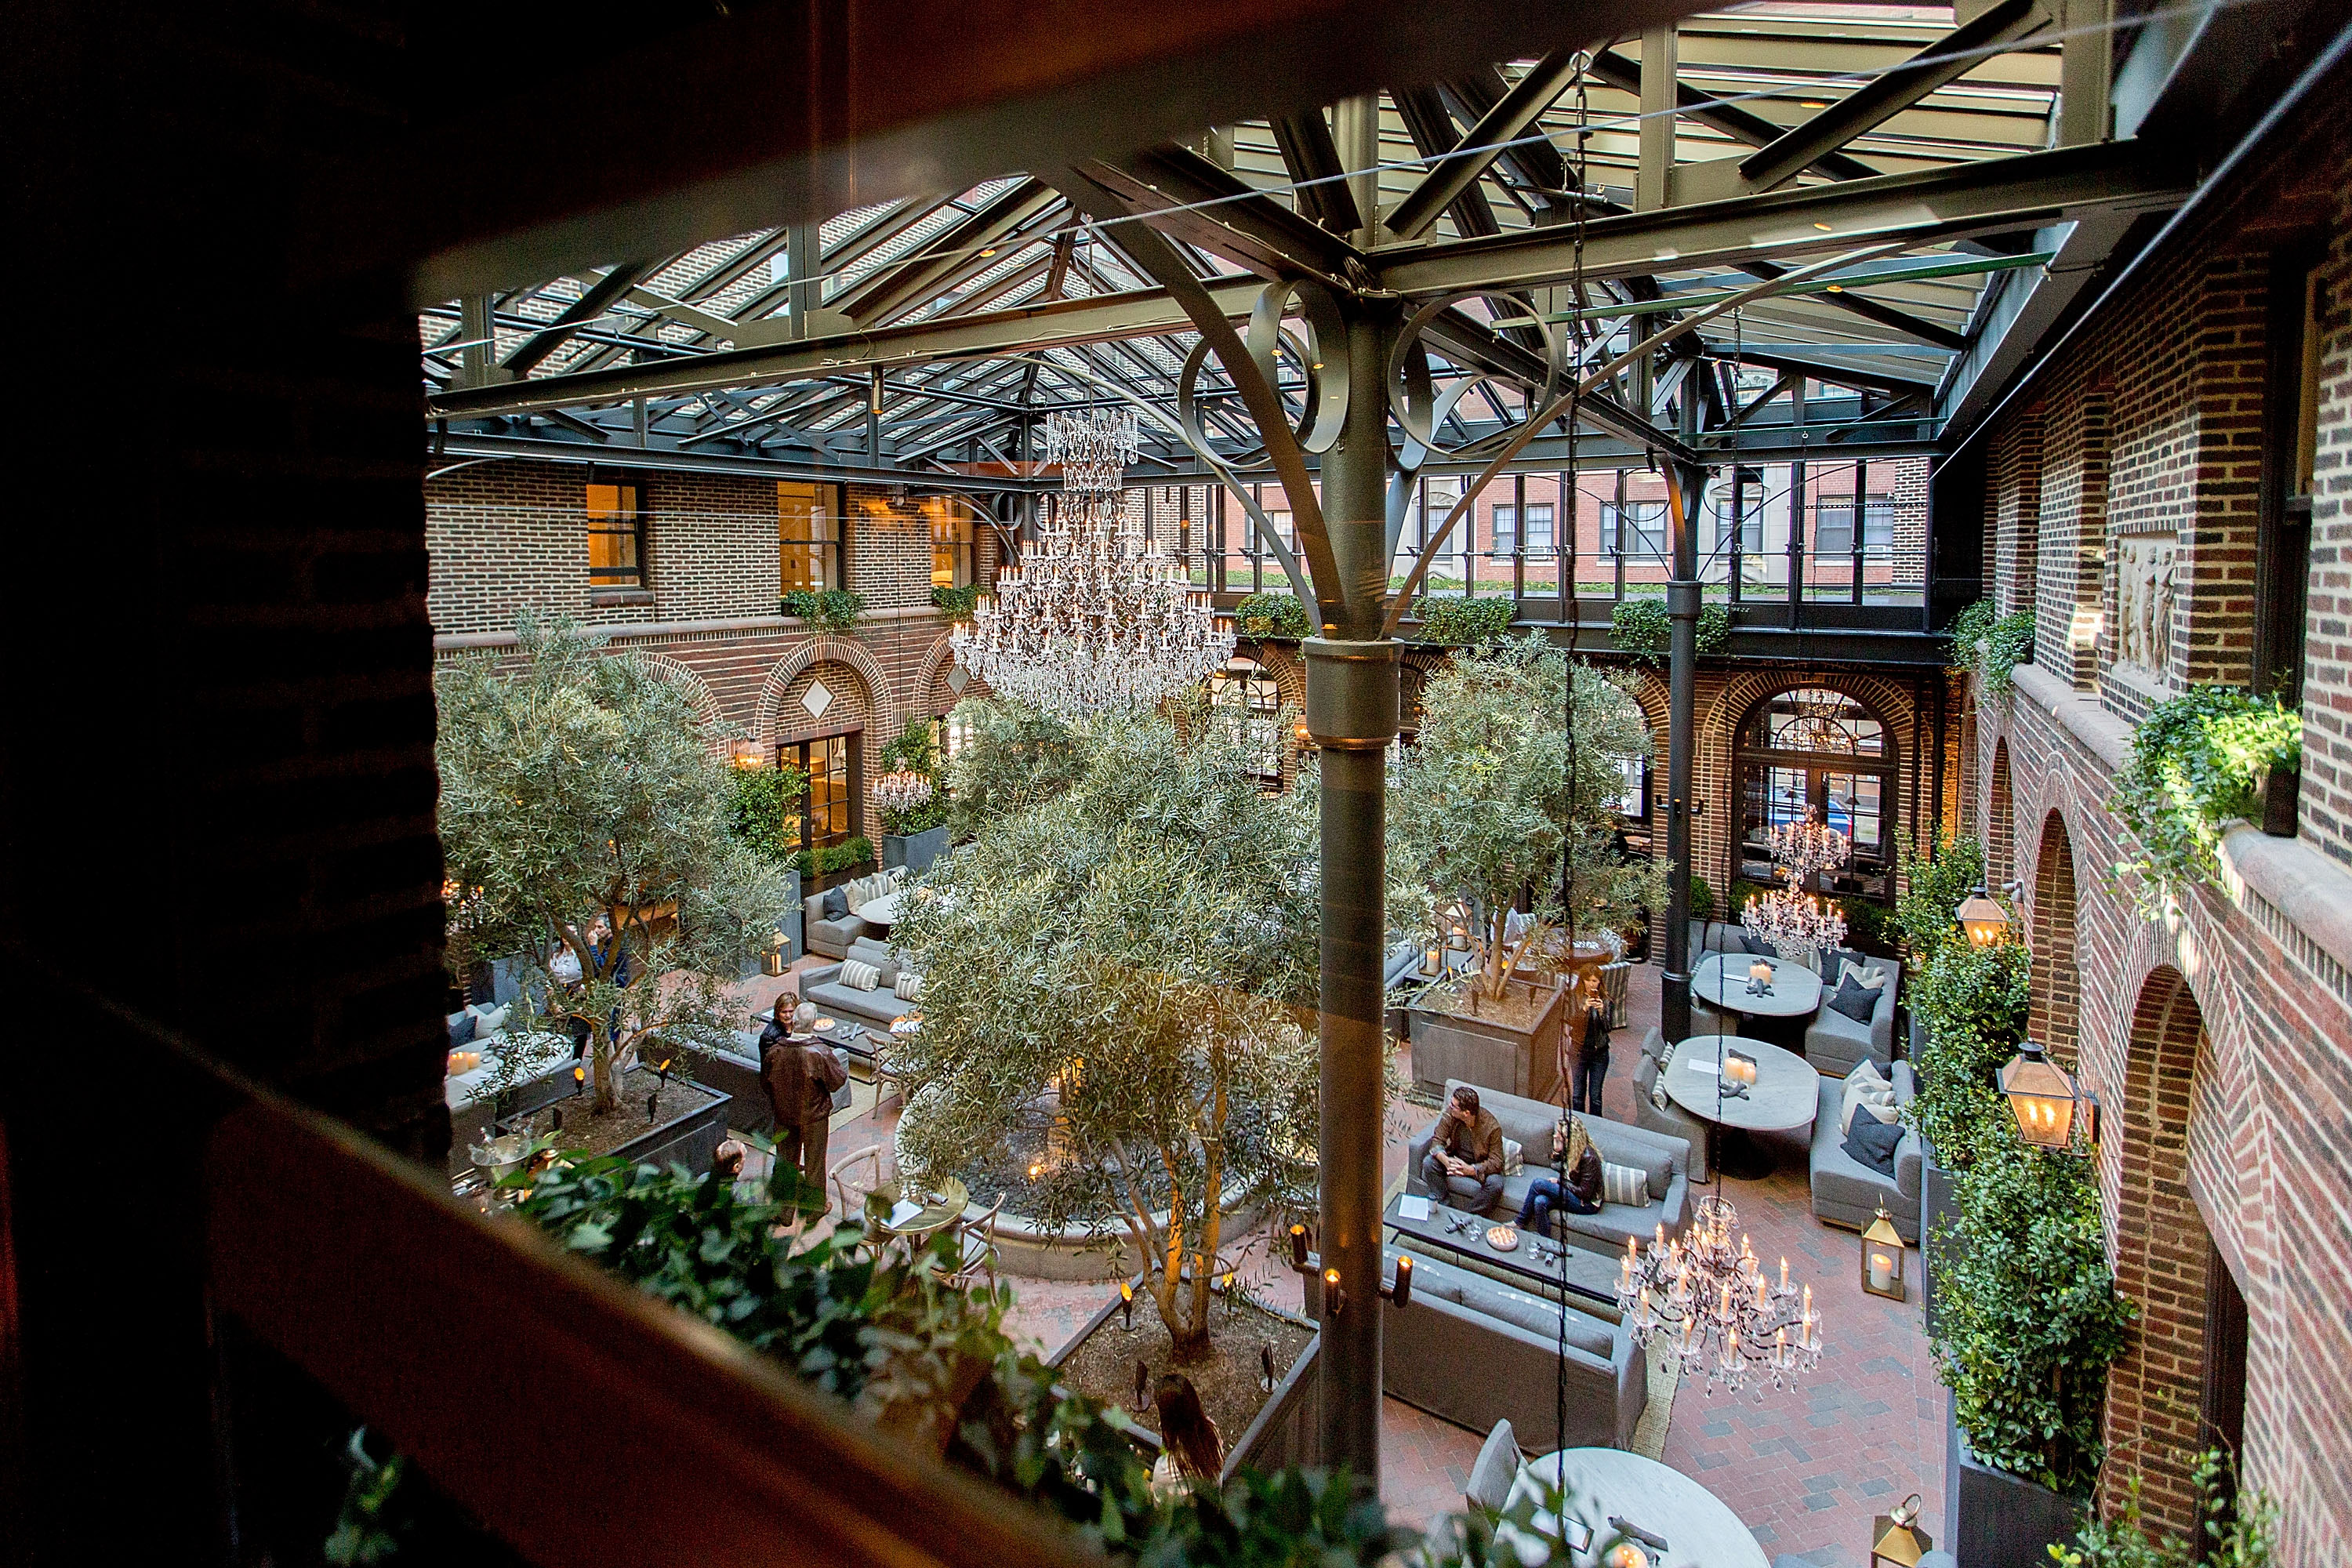 A gorgeous atrium, surrounded in brick walls and topped with a glass roof, filled with chandeliers, gray couches, and trees.